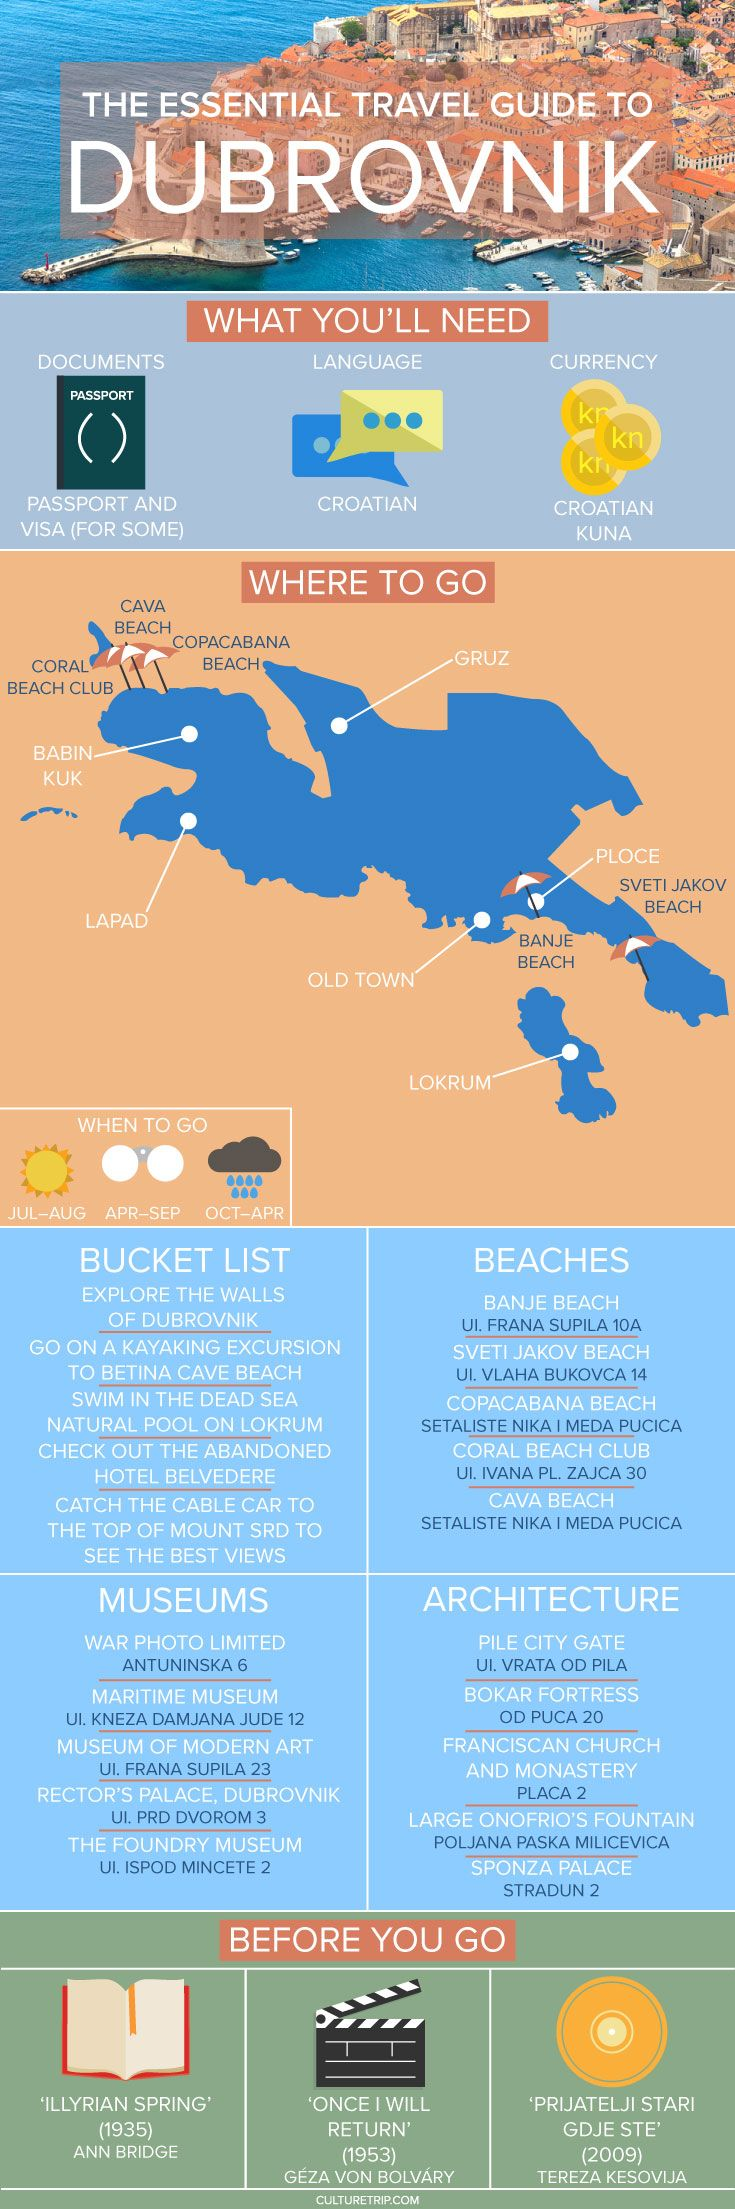 The Essential Travel Guide to Dubrovnik (Infographic)|Pinterest: theculturetrip